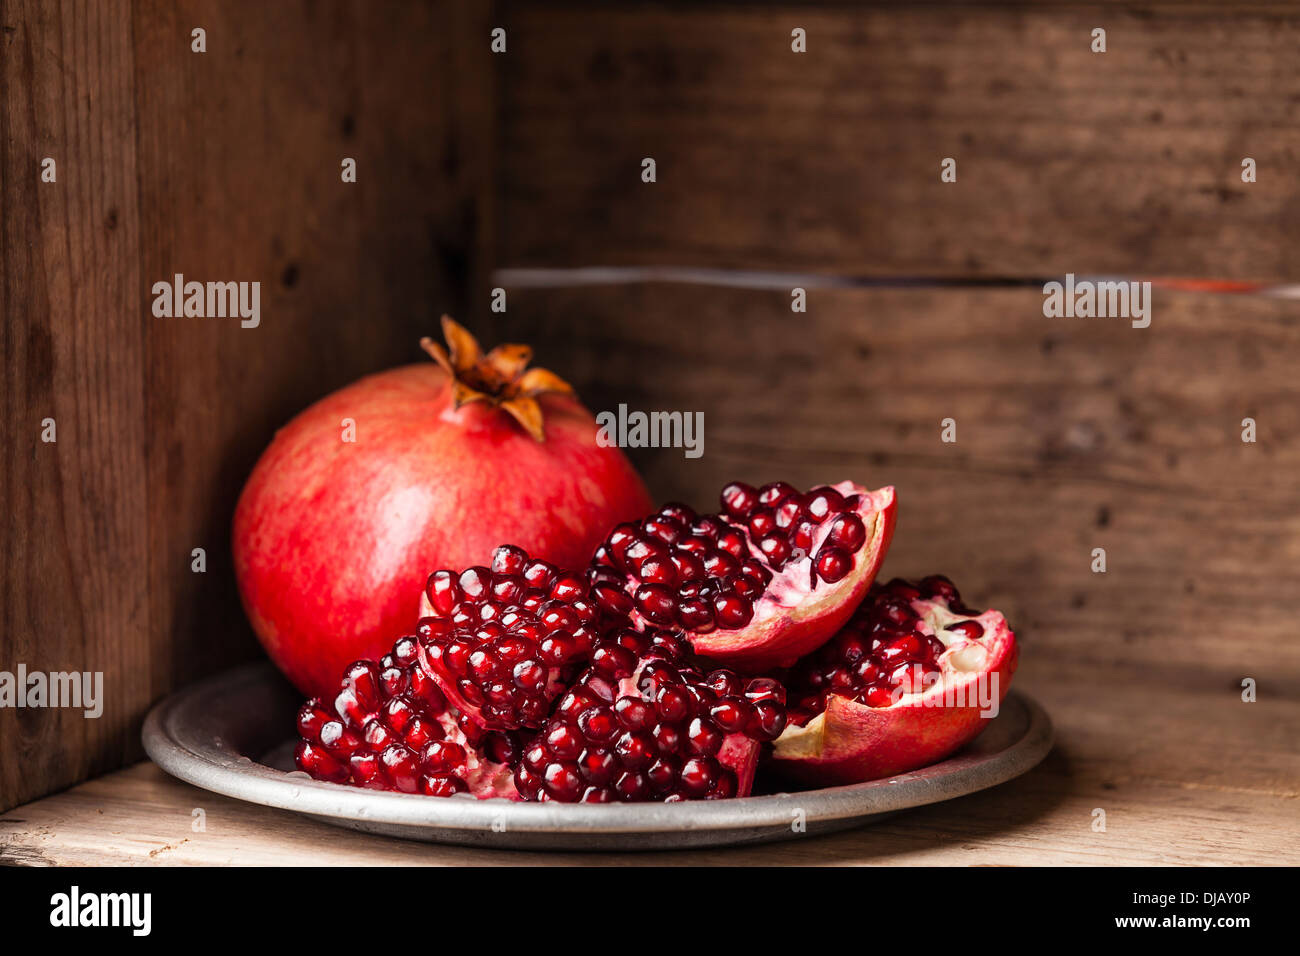 Pieces and seeds of ripe pomegranate - Stock Image